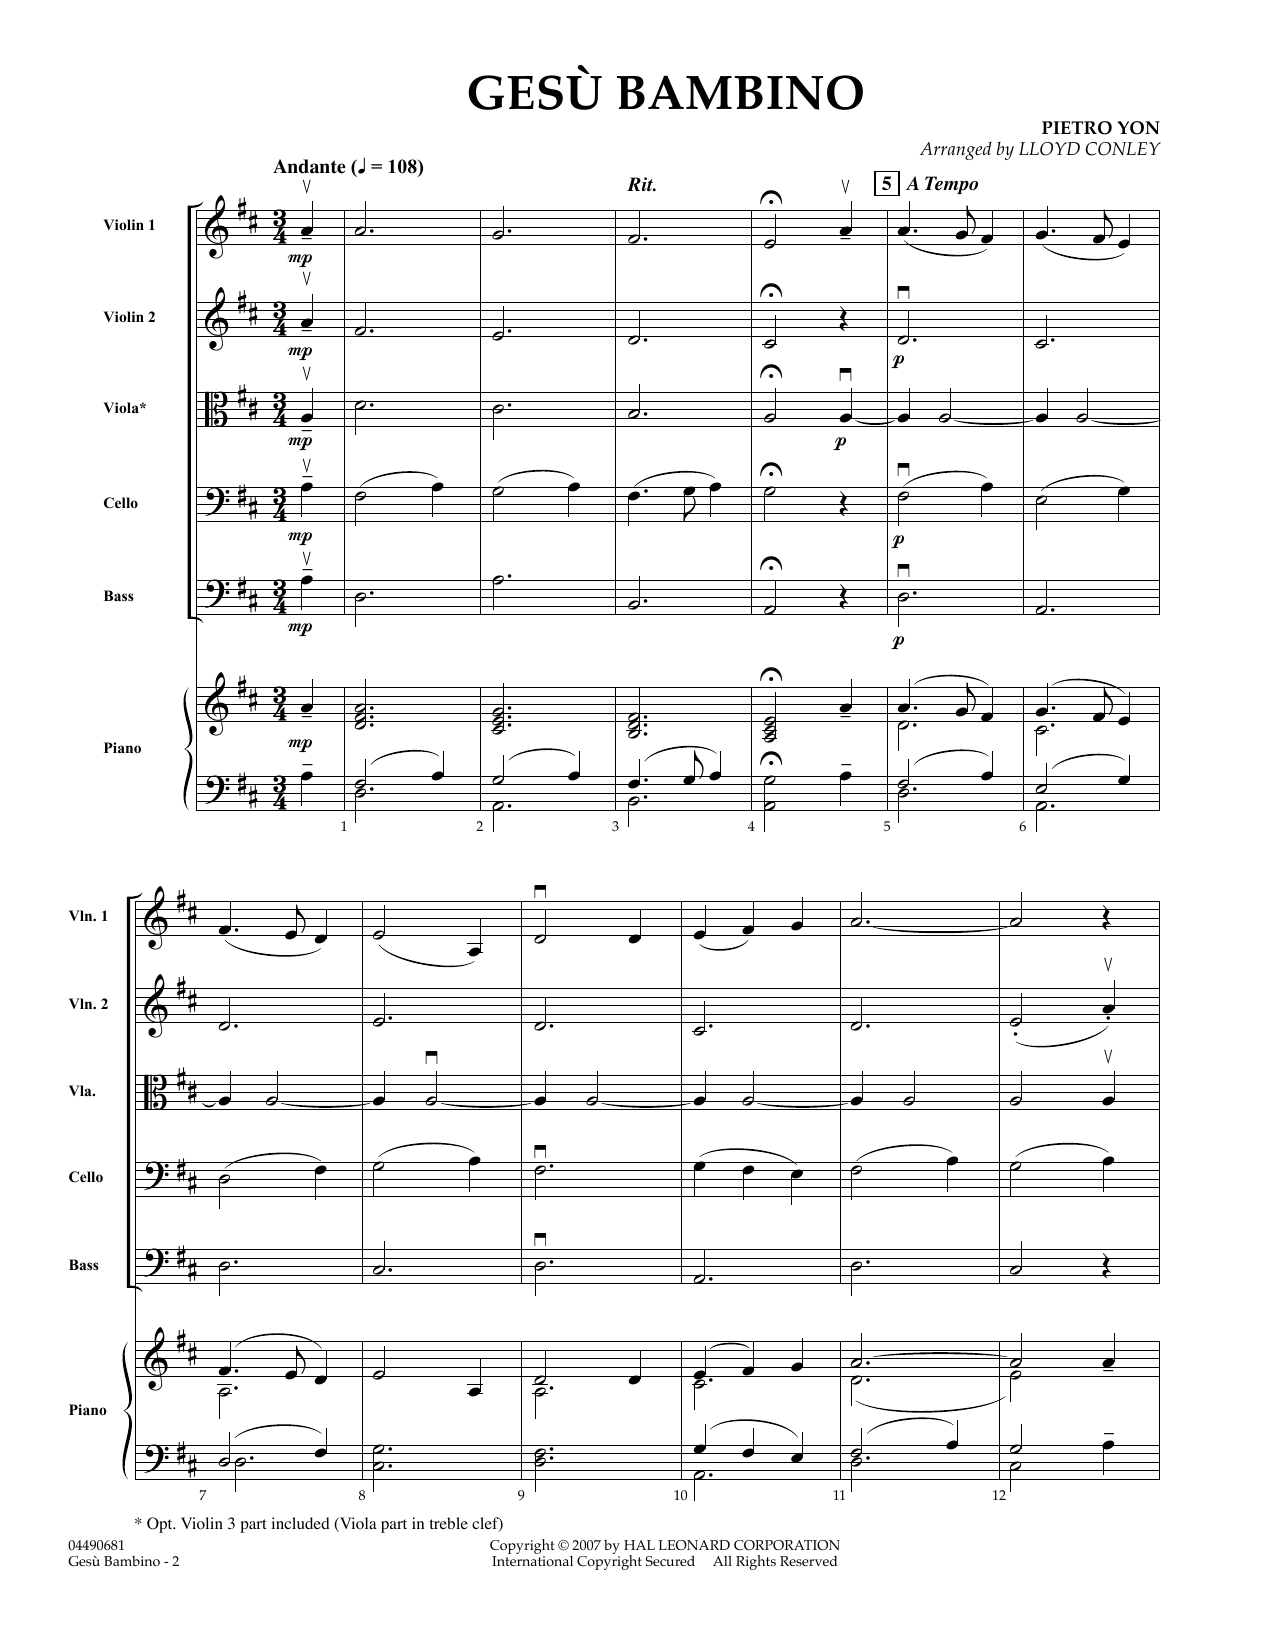 Gesu Bambino (COMPLETE) sheet music for orchestra by Pietro Yon, Frederick H. Martens and Lloyd Conley. Score Image Preview.